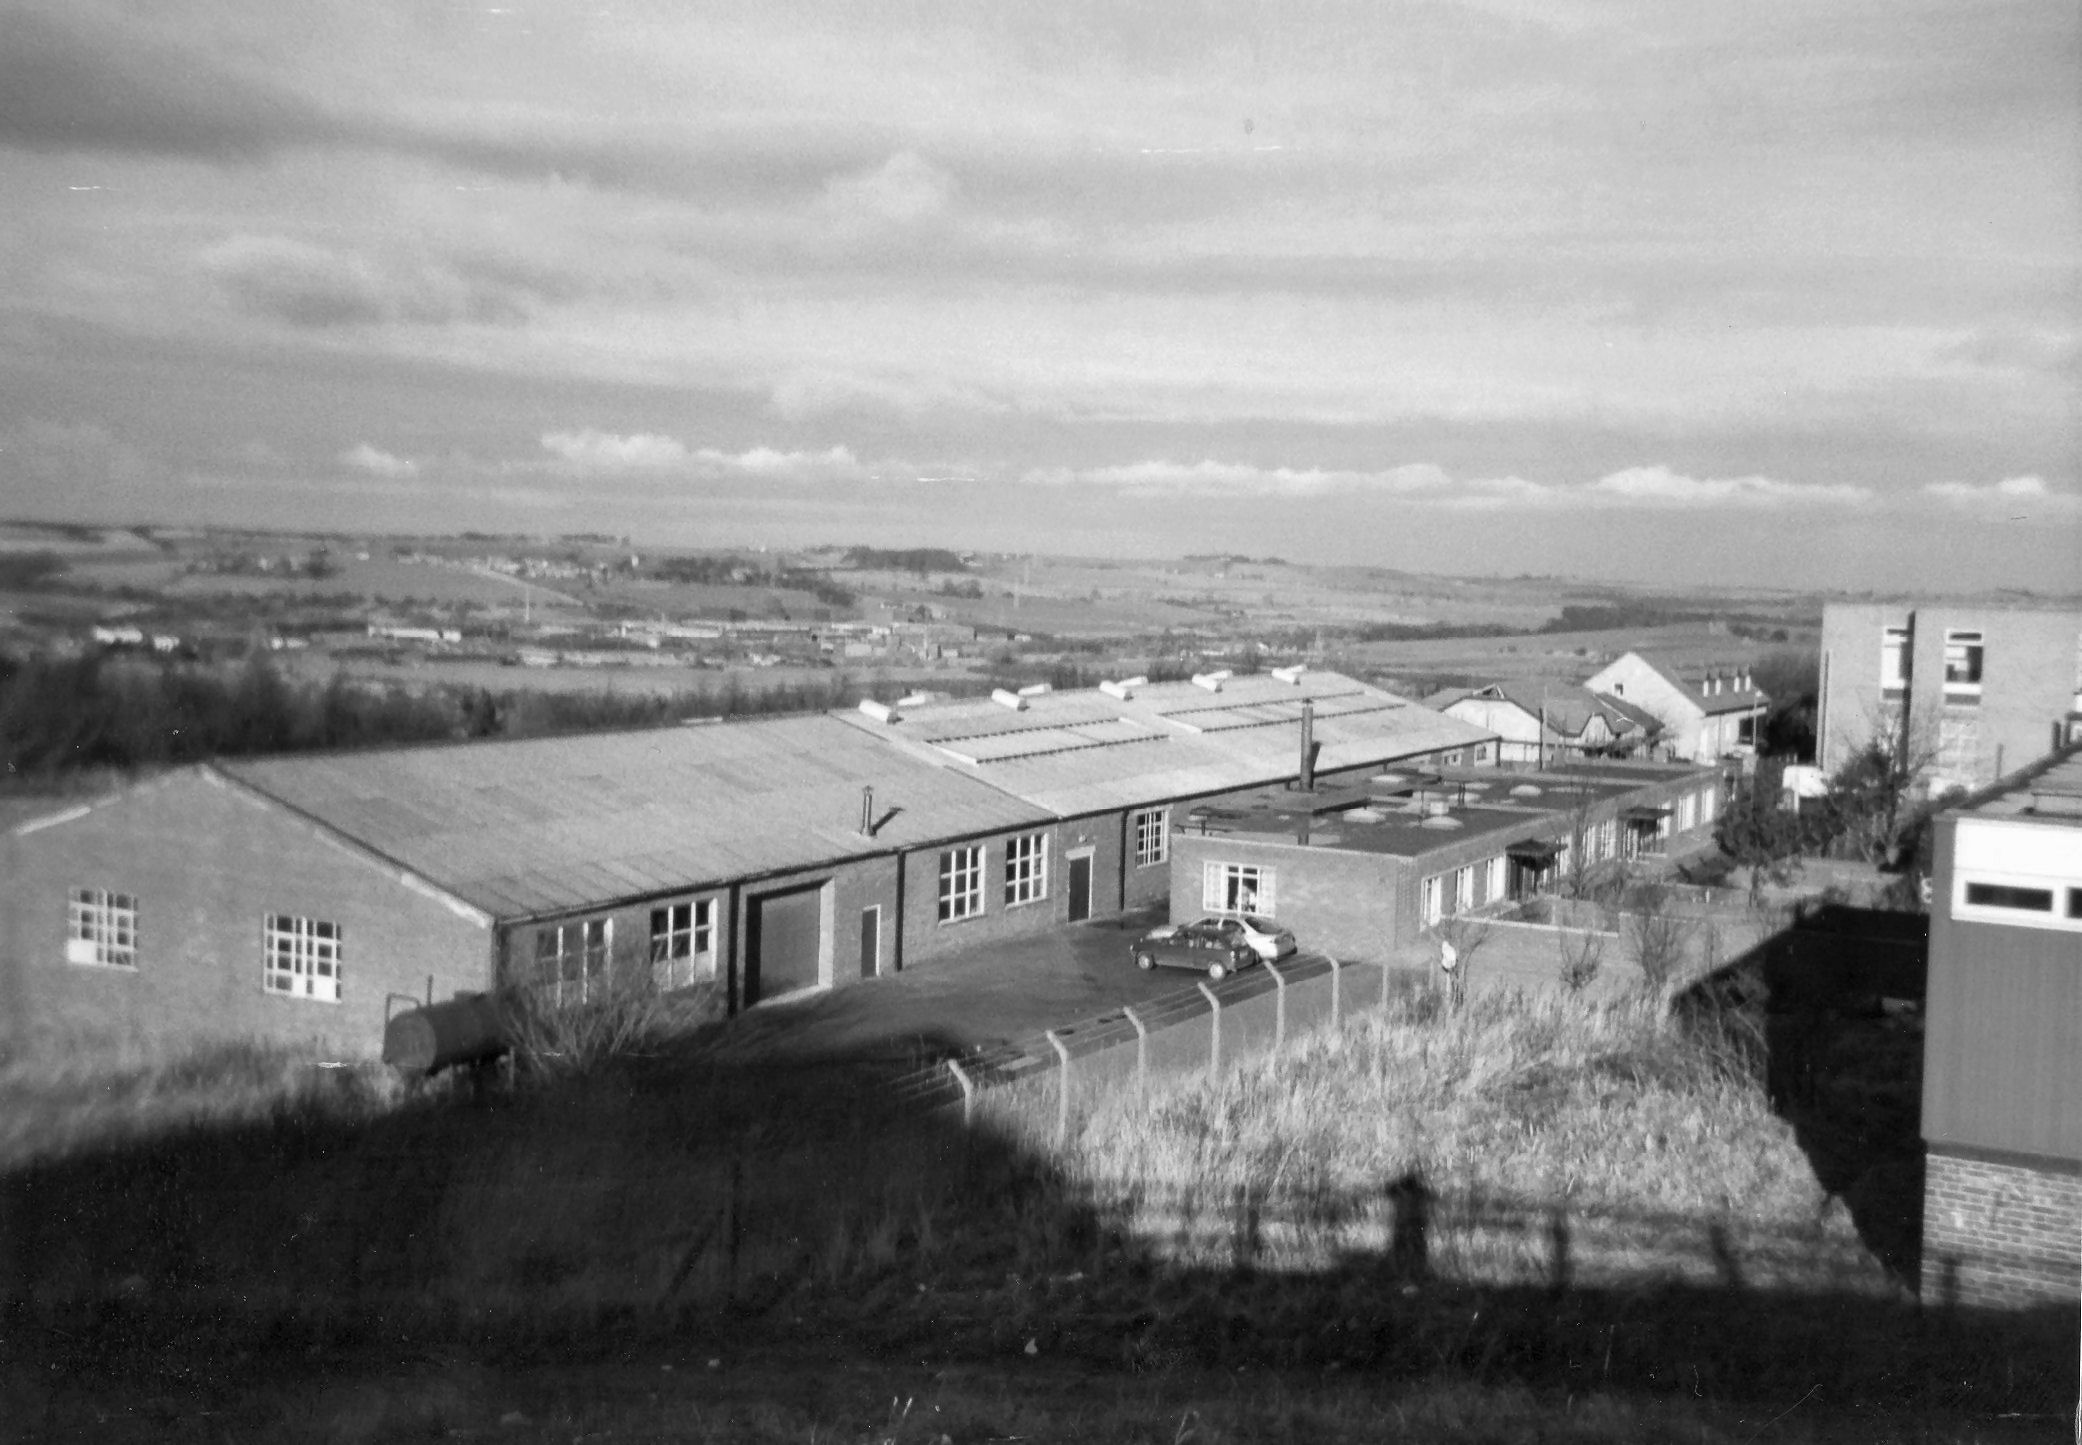 New factory opened in 1959